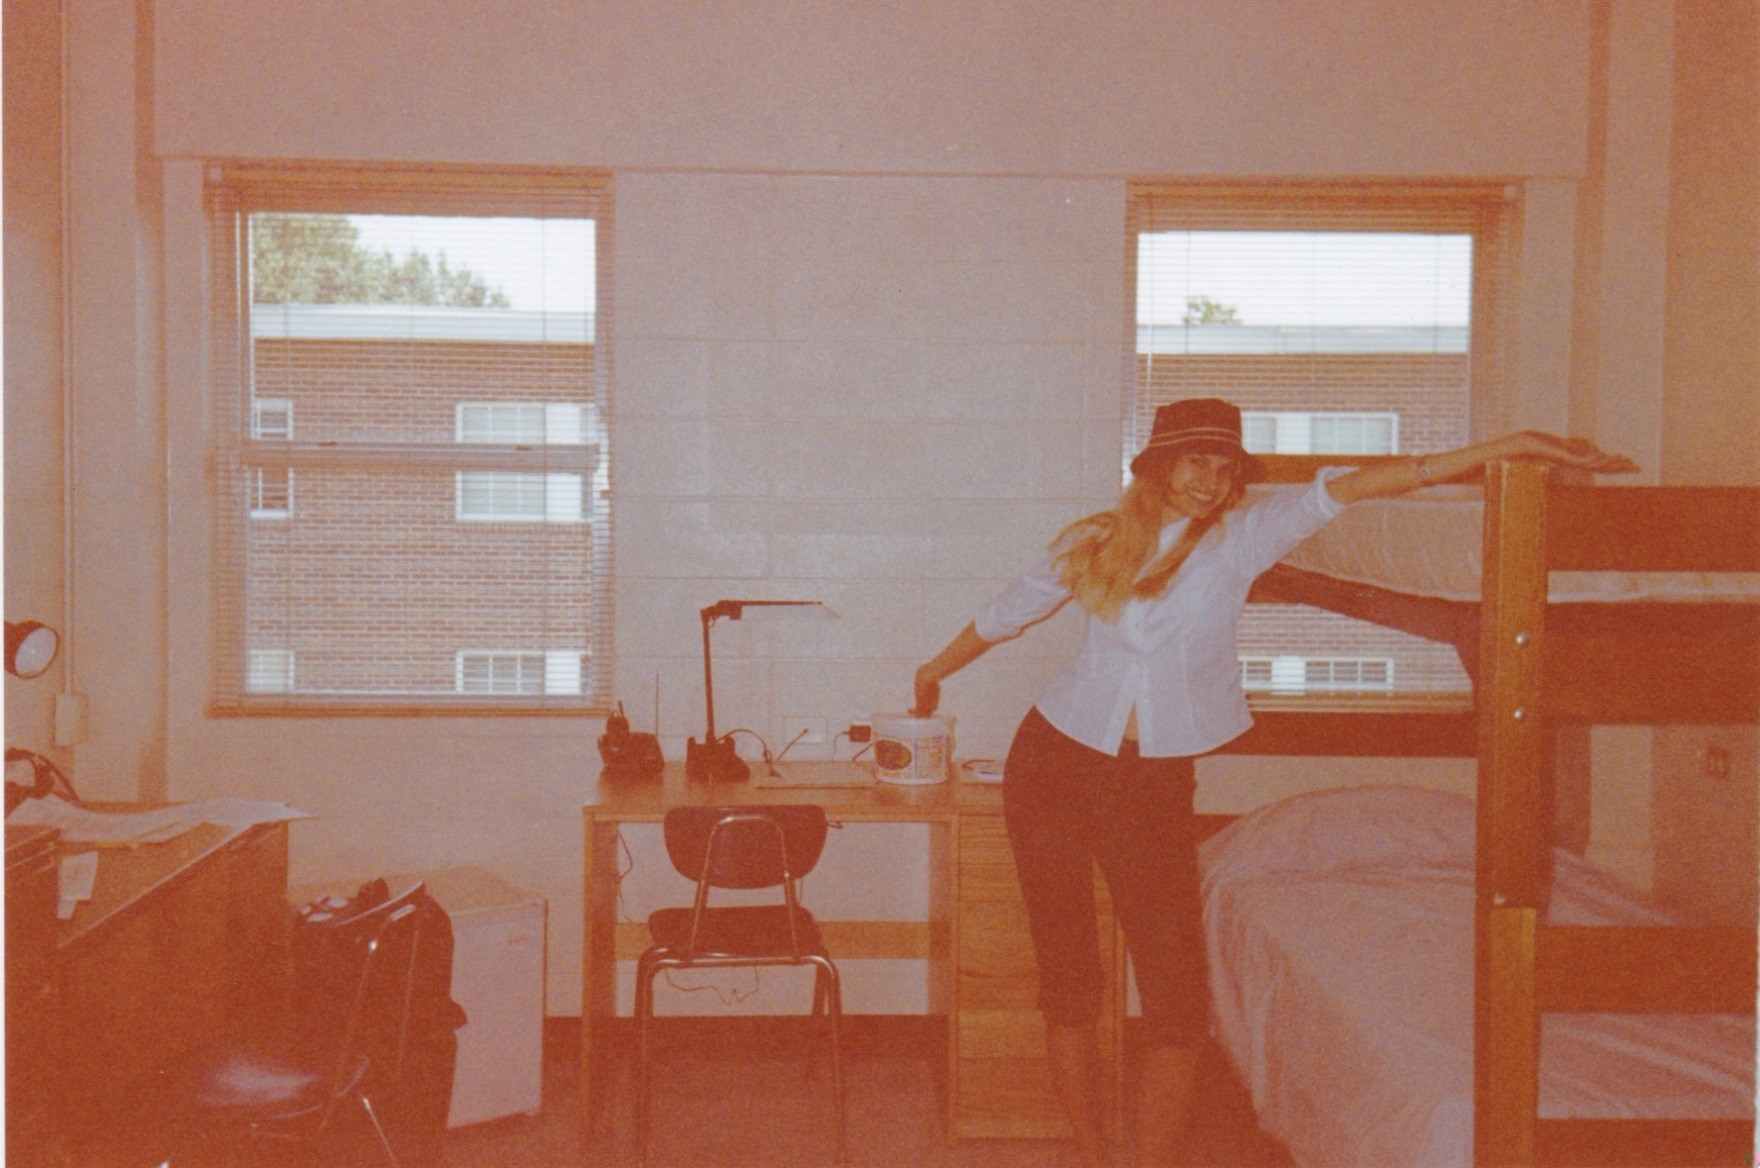 August 1999 - Moving into my dorm room. I hadn't received any obvious death threats yet.